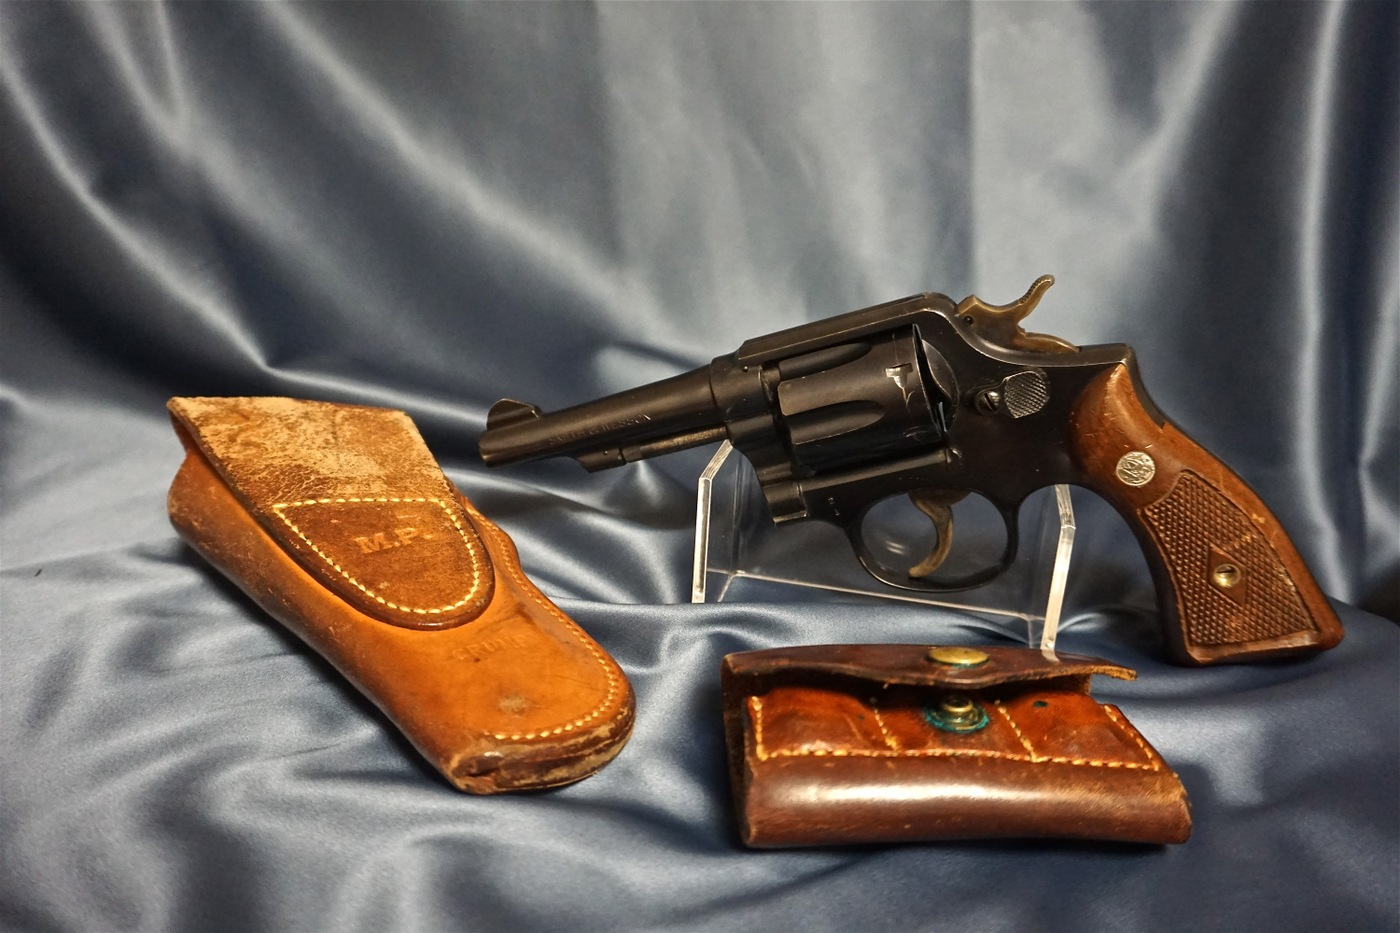 Photo of a gun next to a worn holster and ammo pouch, created exclusively for the FBI's S&W Model 10 M&P .38 revolver